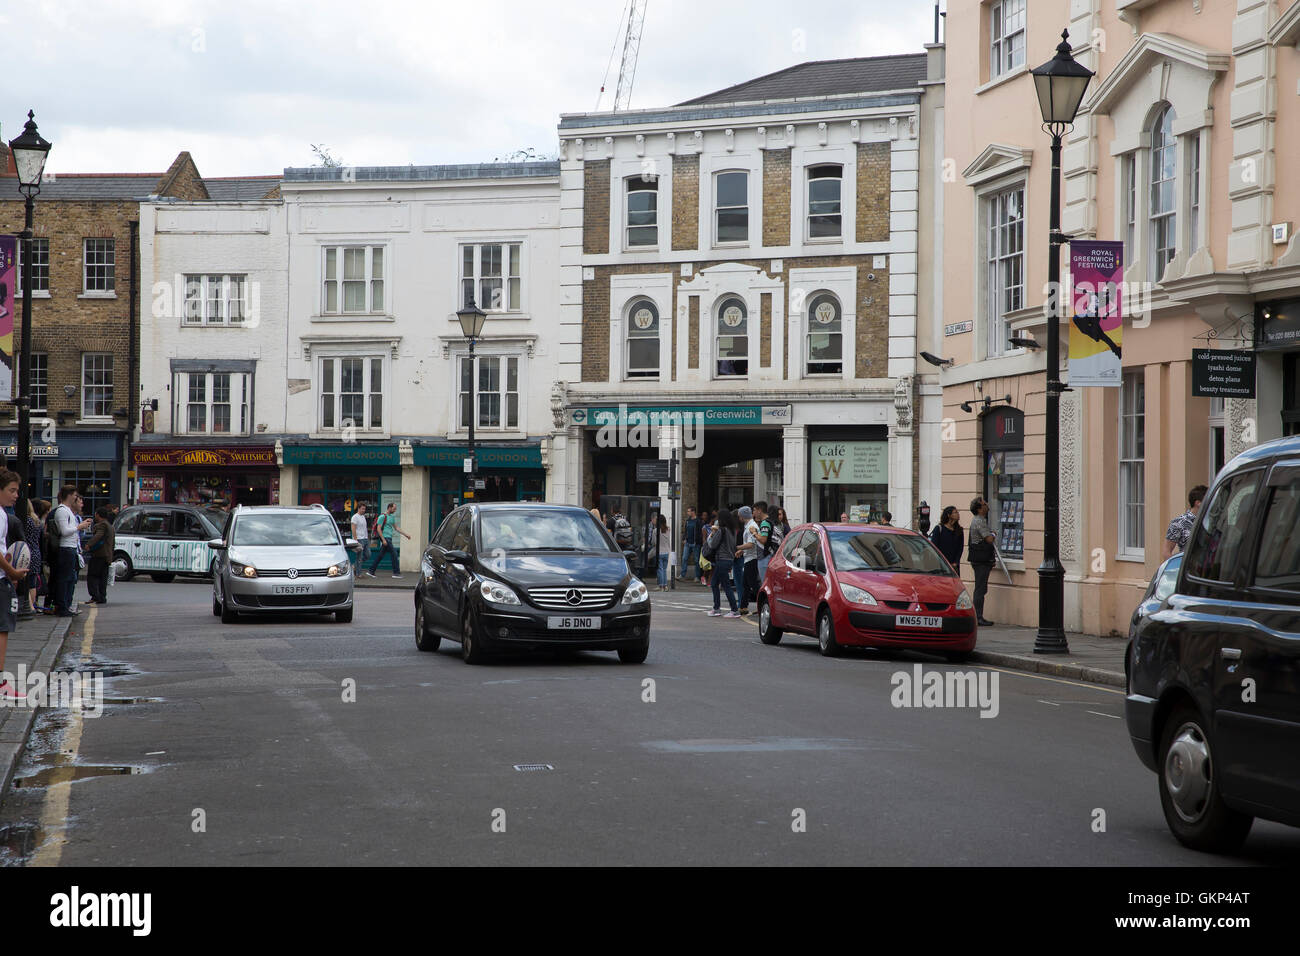 Greenwich,UK,21st August 2016,Traffic in Greenwic Credit: Keith Larby/Alamy Live News - Stock Image